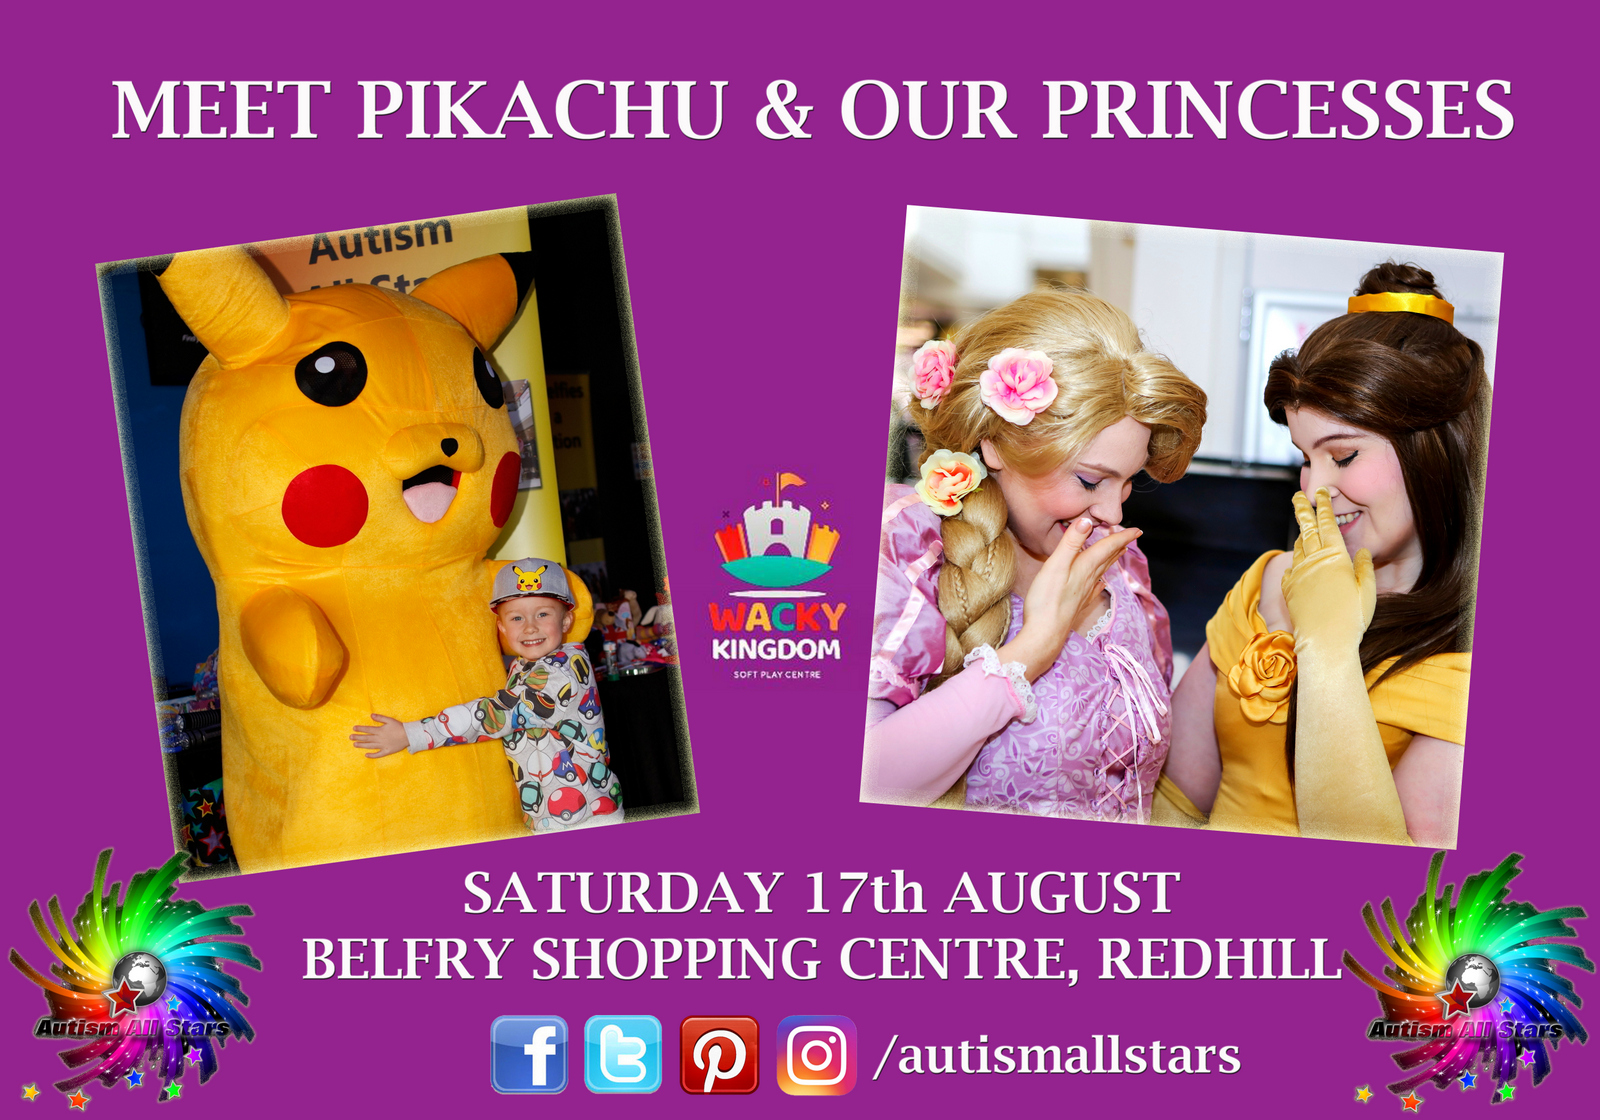 Aspergers, autism, disability, diversity, parenting, special needs, autism awareness, autism acceptance, autism parents, events, autism-friendly, redhill, surrey, belfry shopping centre, Autism All Stars, Pikachu, Princesses